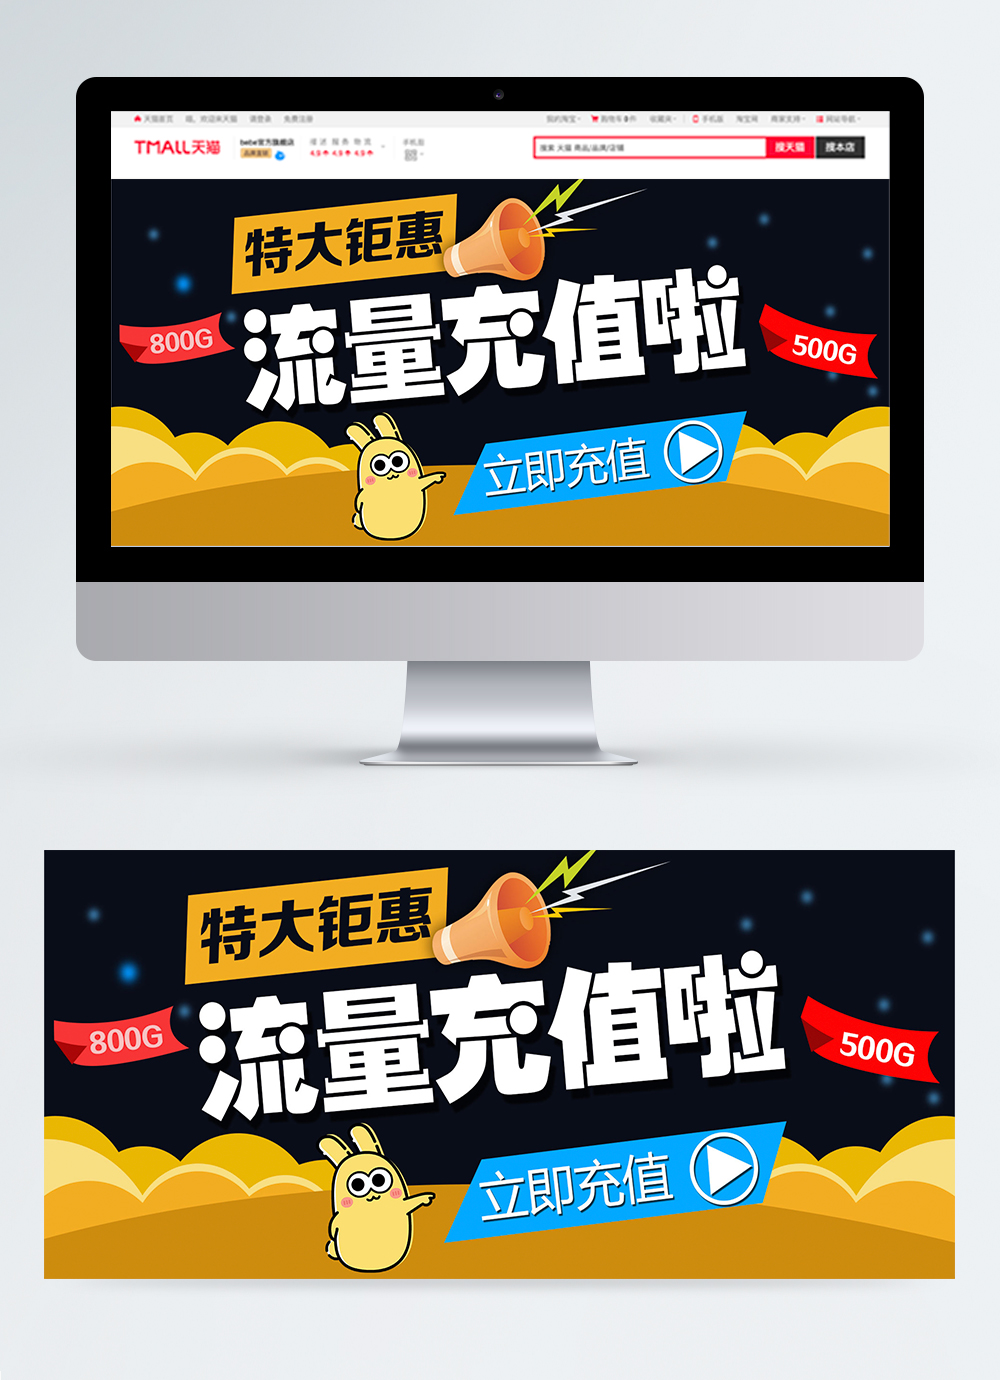 Flow recharge taobao banner template image_picture free download